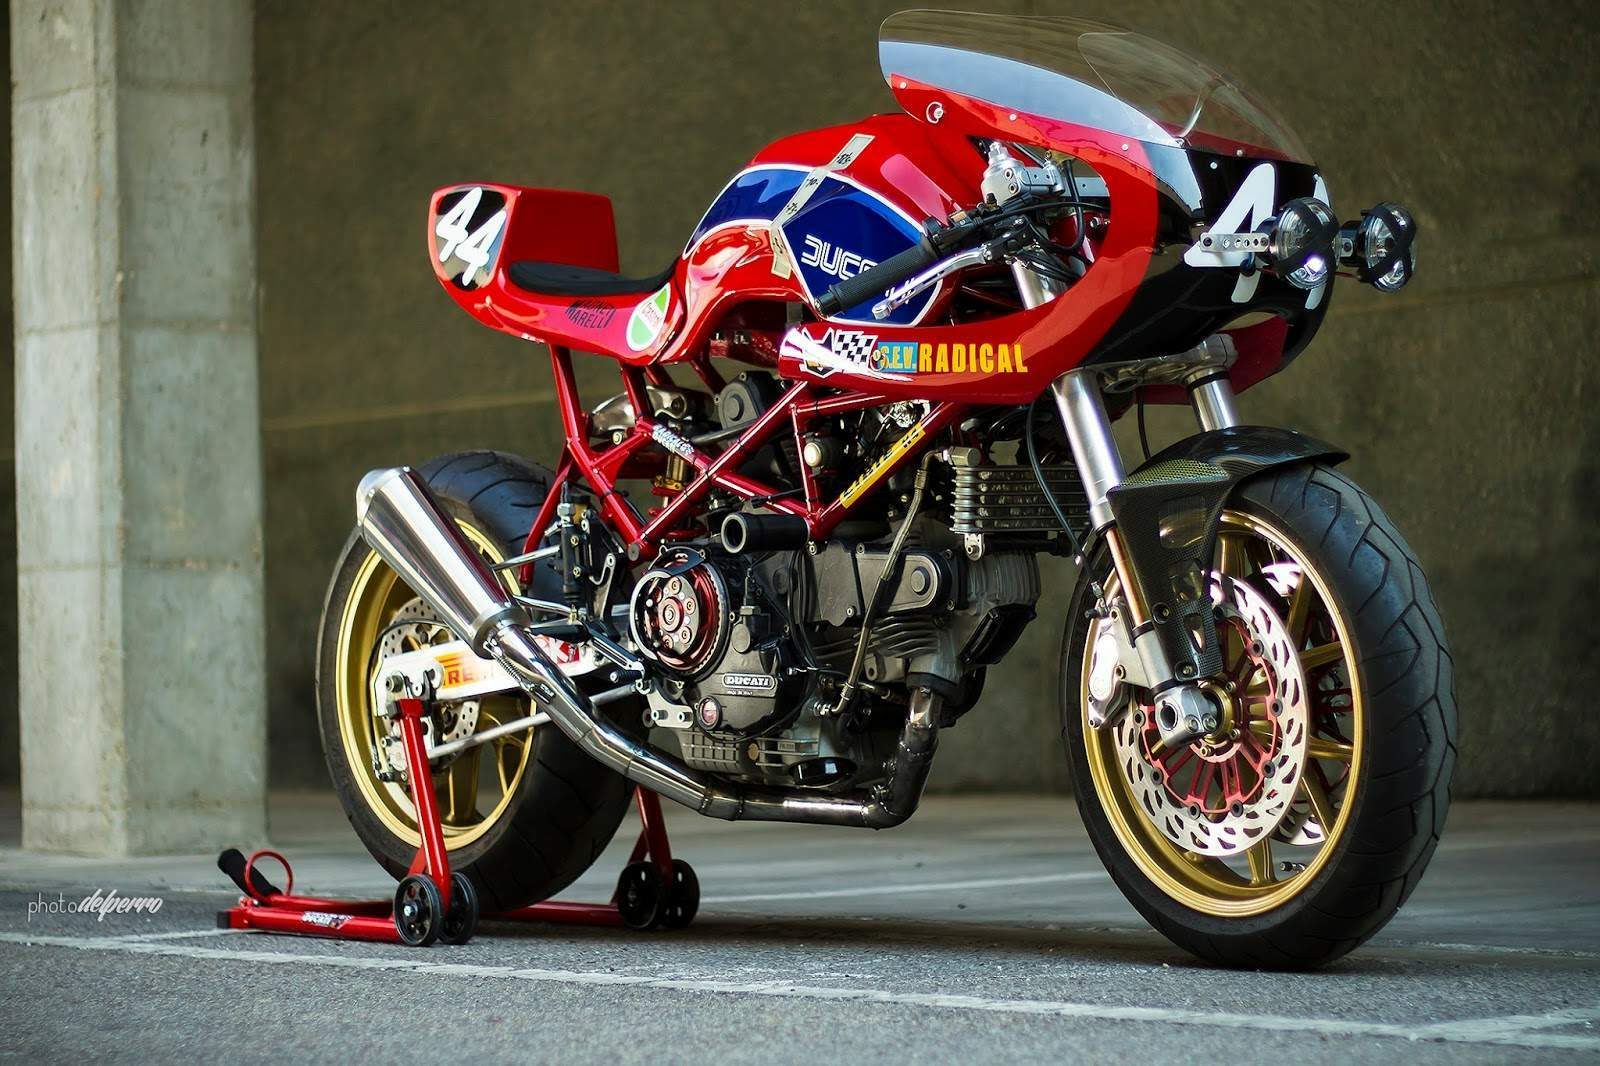 Radical Ducati S.L.: From USA TWINLINE MOTORCYCLES makes